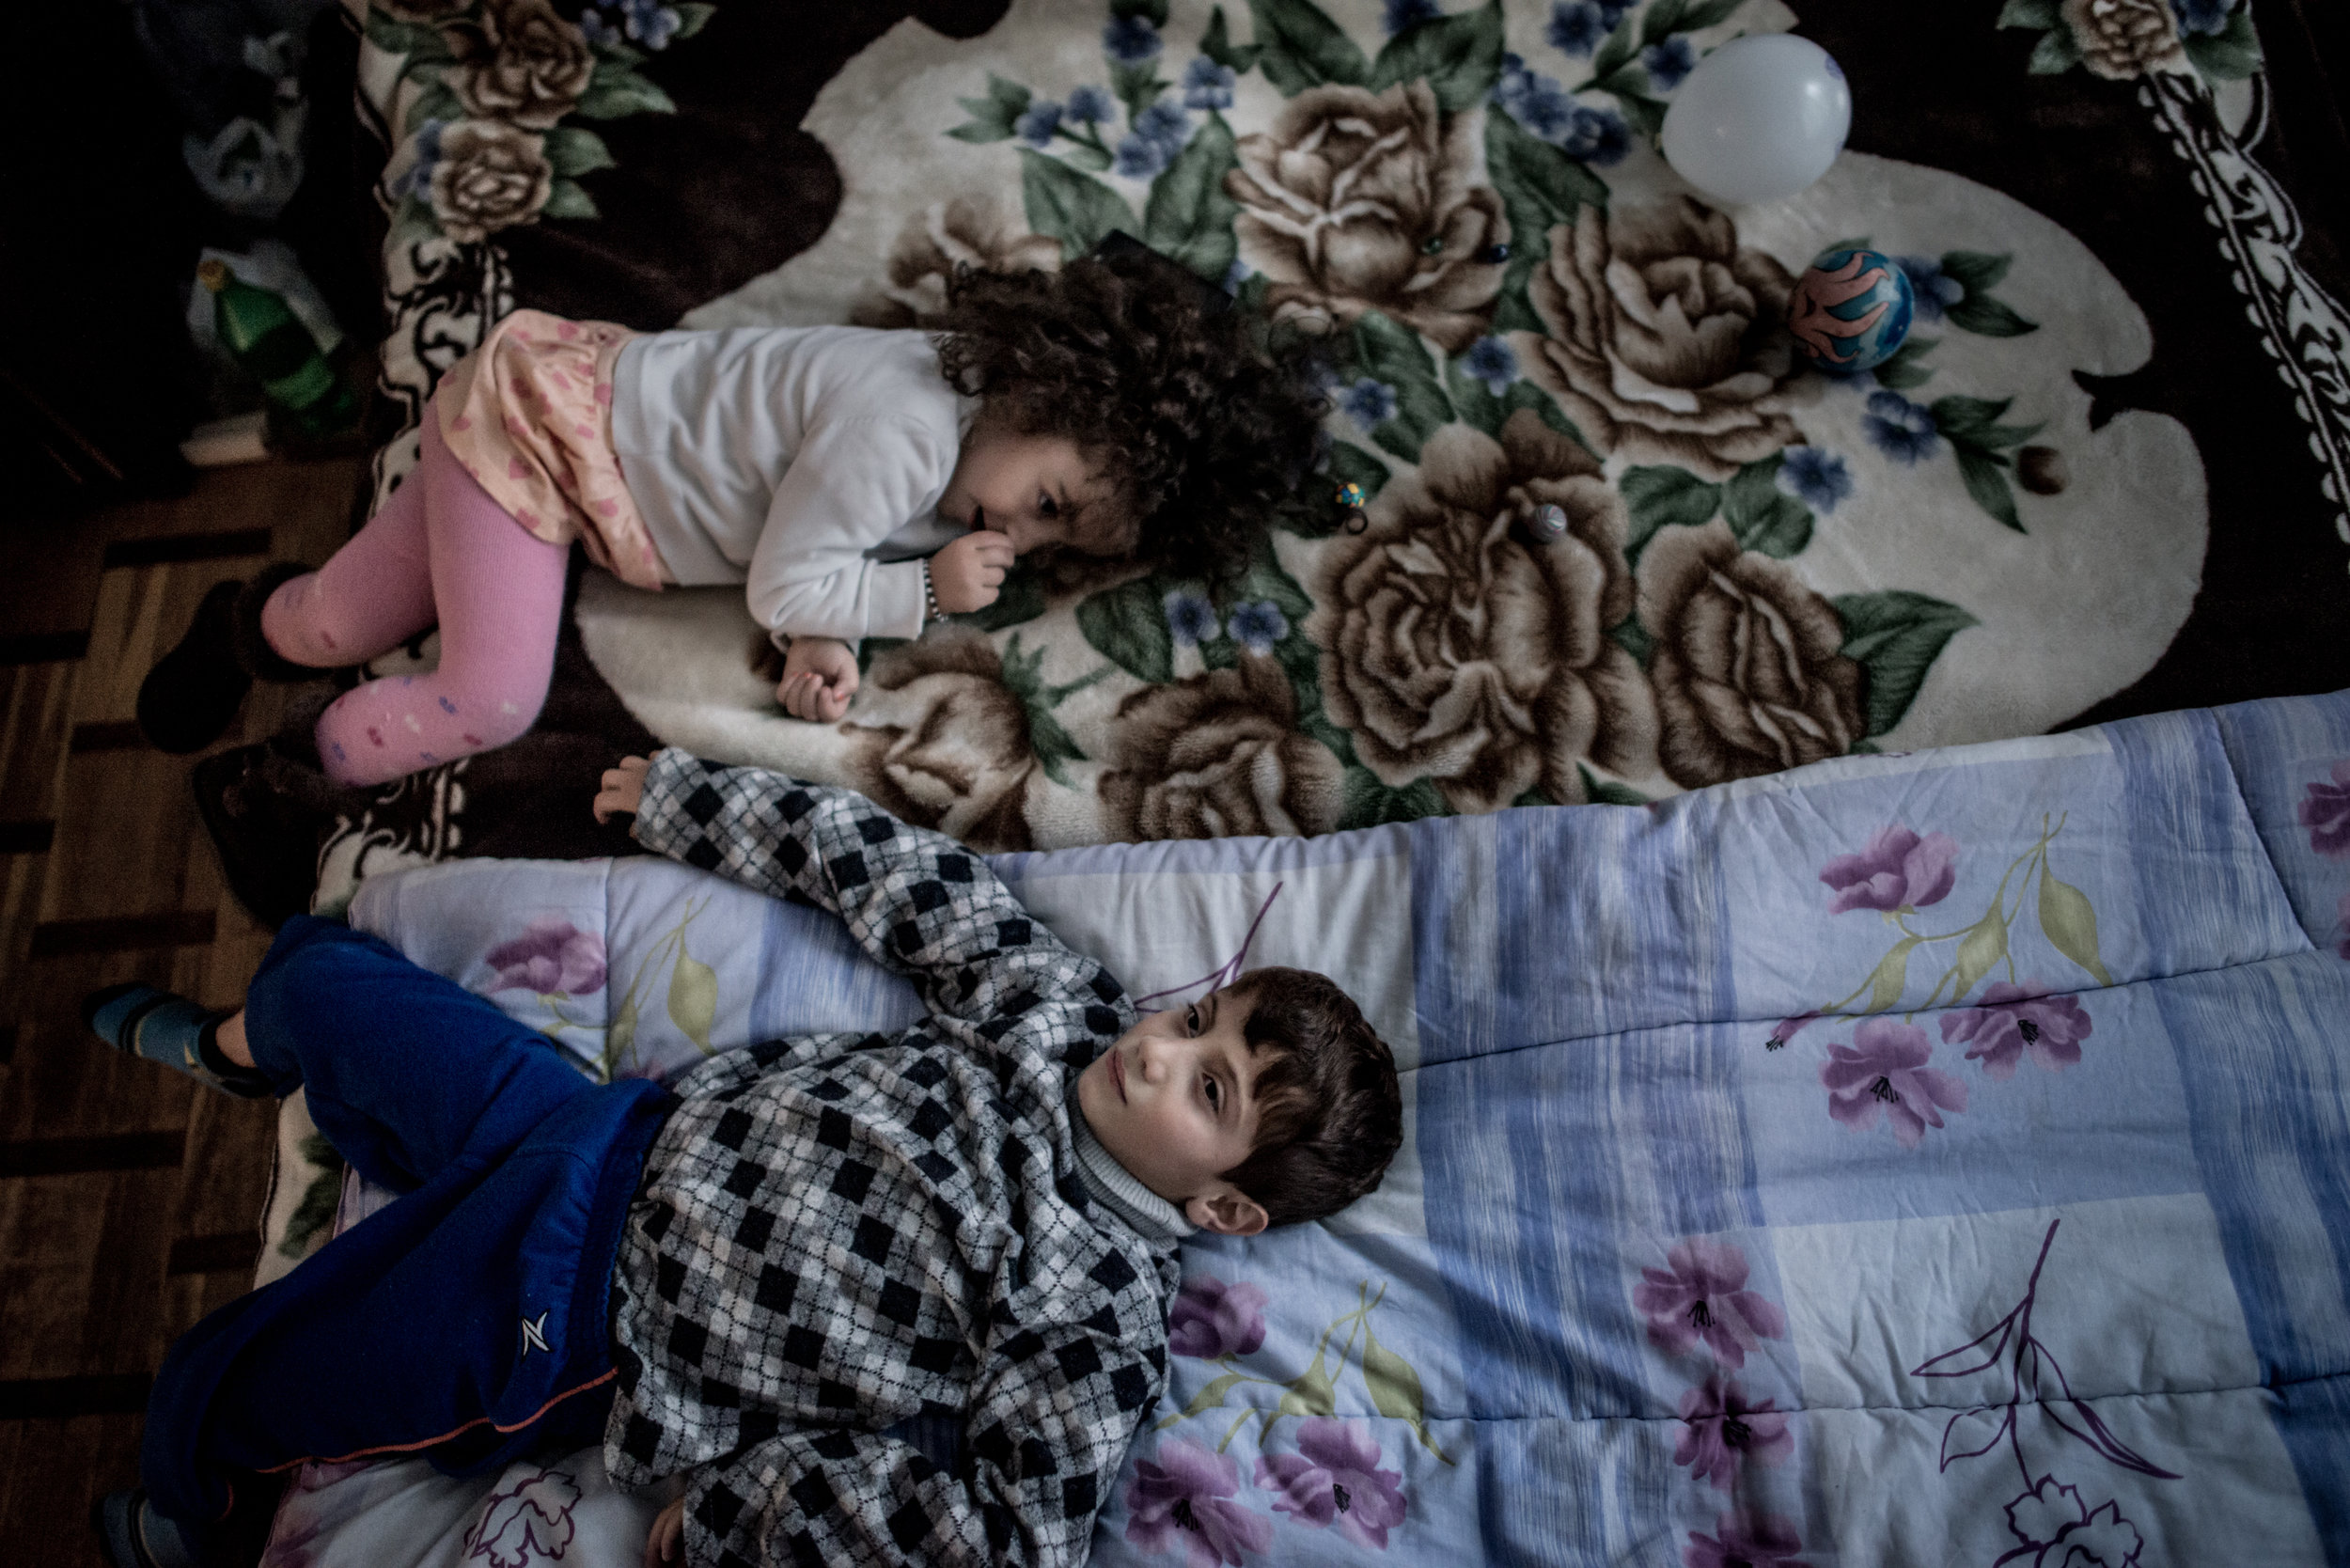 Garo Tomassian, 8,  plays with his newfound friend, Aaliyah, from Yerevan. Garo's family  - his mother, two older brothers, and sister - arrived in Armenia from Turkey's Suruc refugee camp in September 2015. His father was killed by Islamic State fighters earlier that year. They rented a house in Yerevan, and their mother Ilona found work as a tailor. The family moved to Suruc after fleeing Kobani. Note: This family is related to the family of Serop Tomassian. Serop was the brother of the killed father of this family. This family lives separately from Serop's family, in Yerevan.